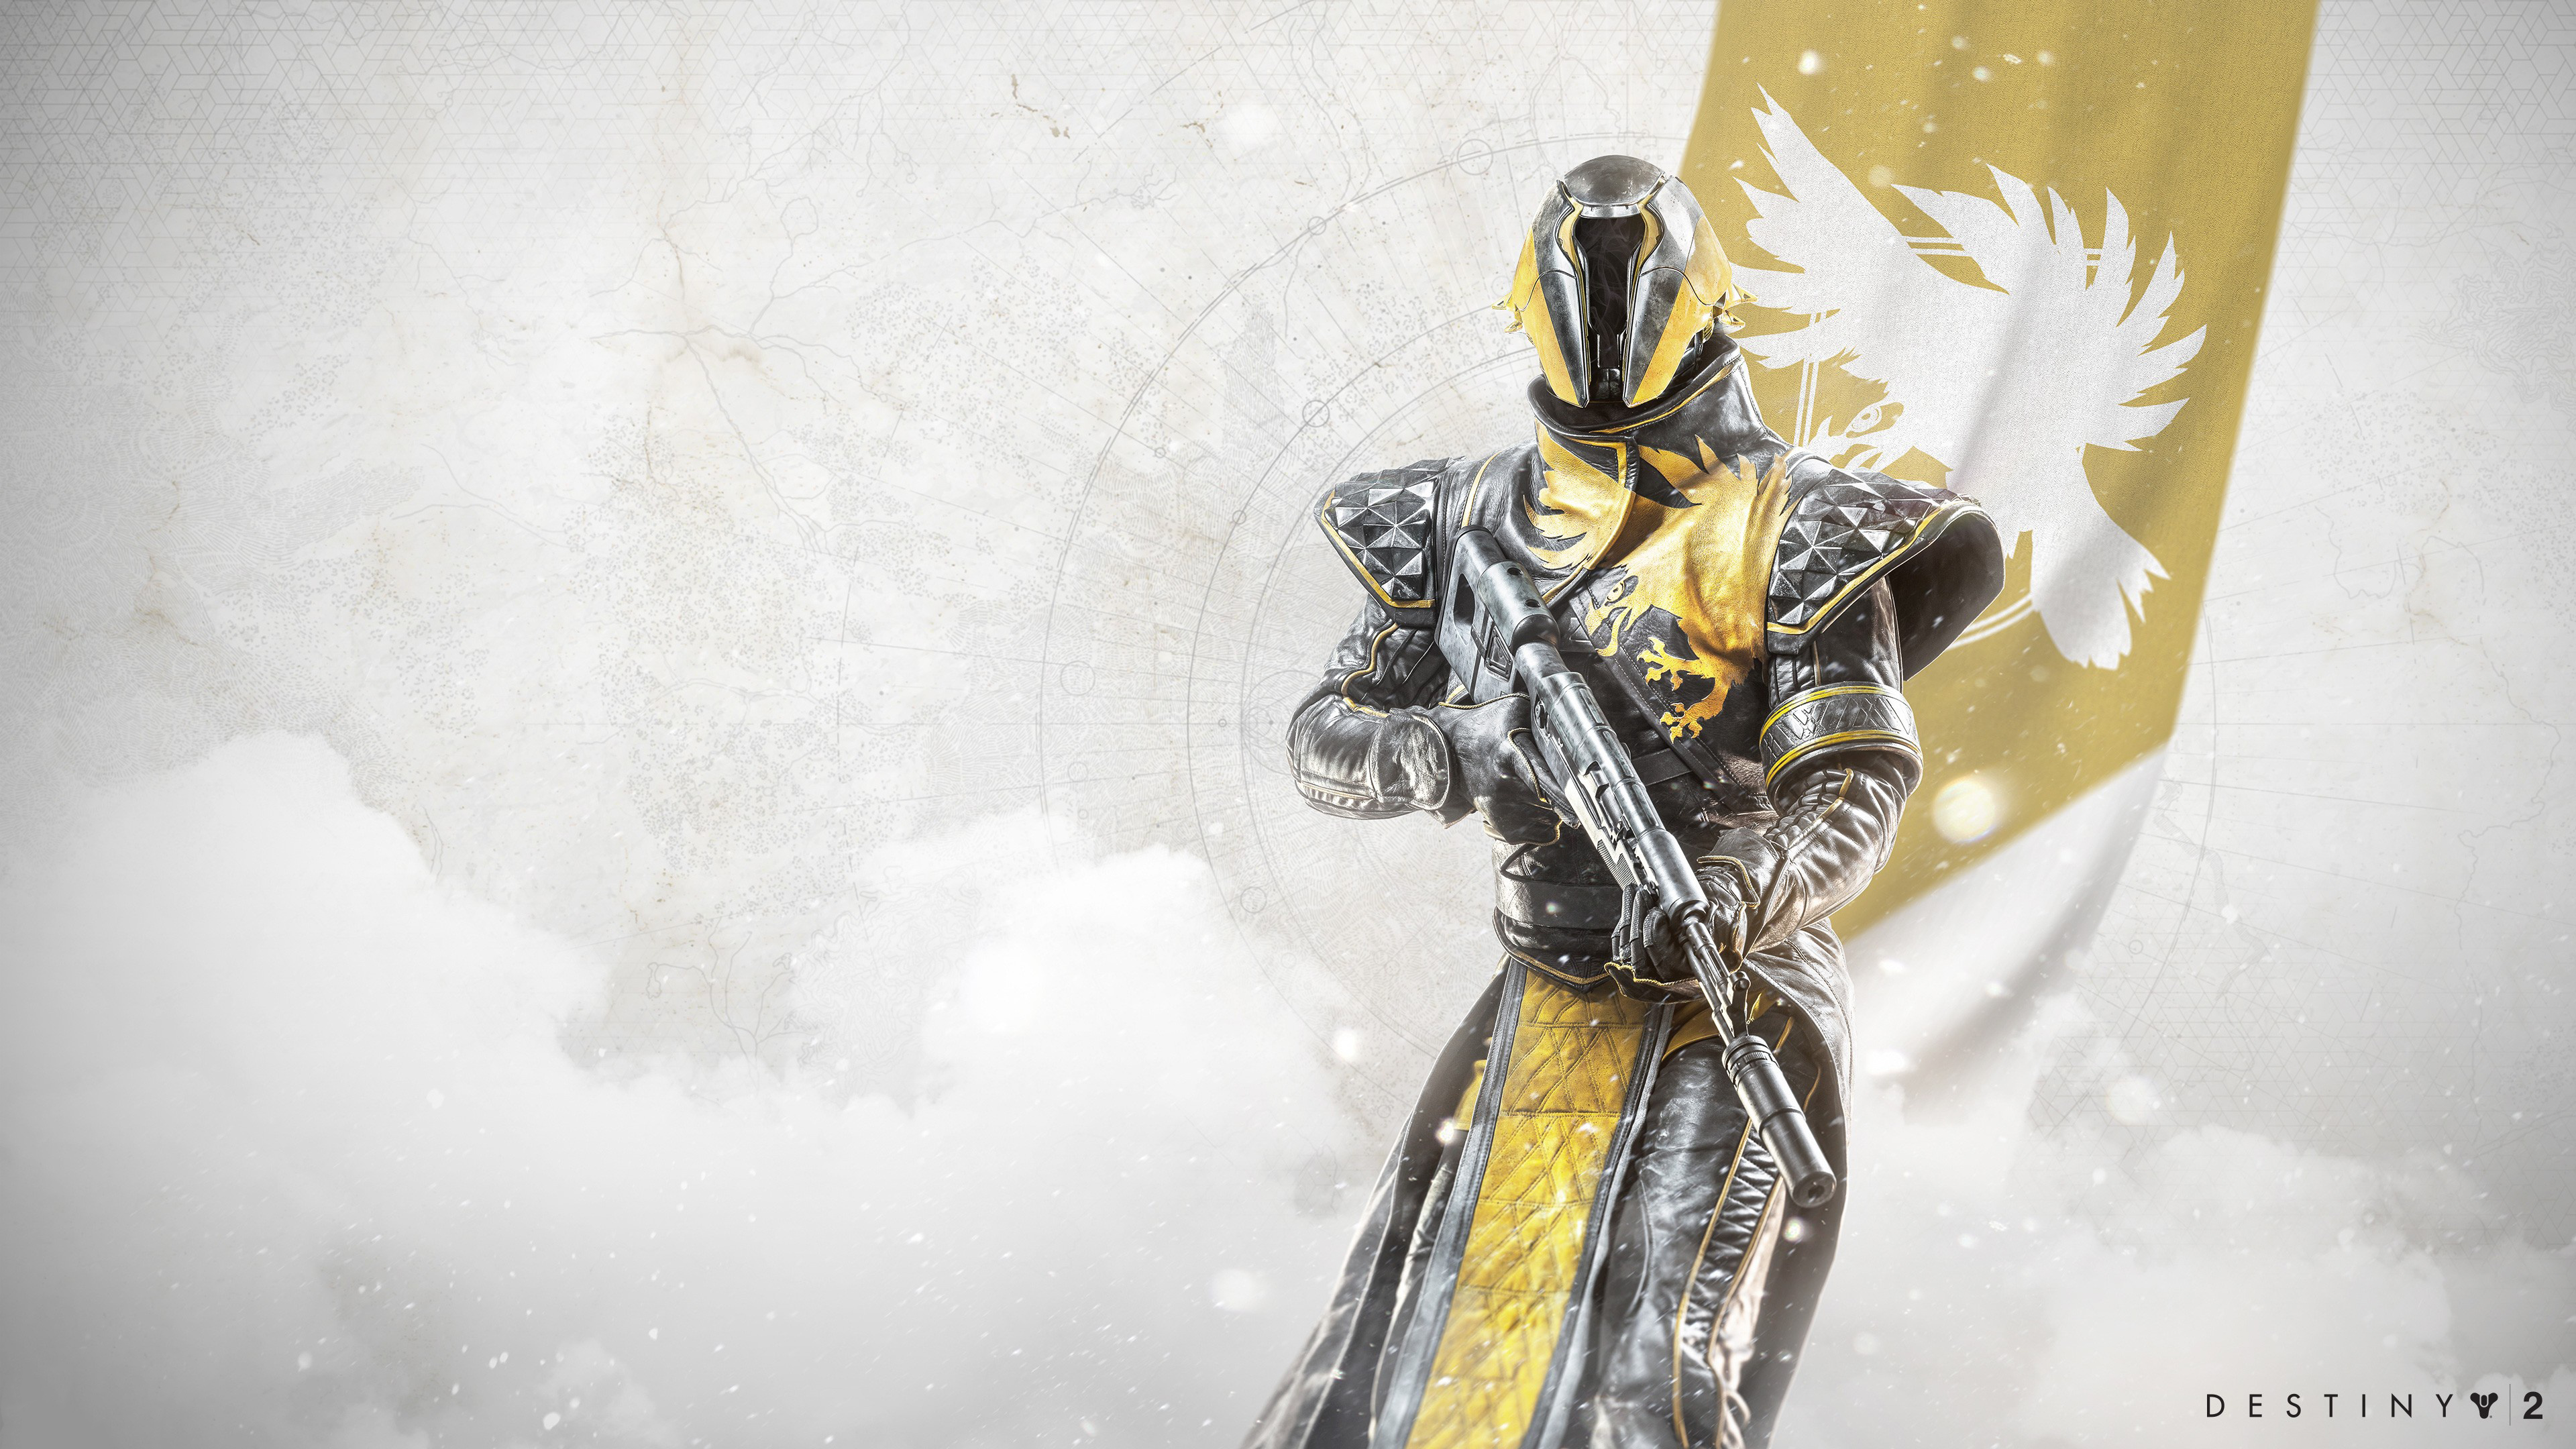 download this free destiny 2 warlock tablet wallpaper in hd or 4k